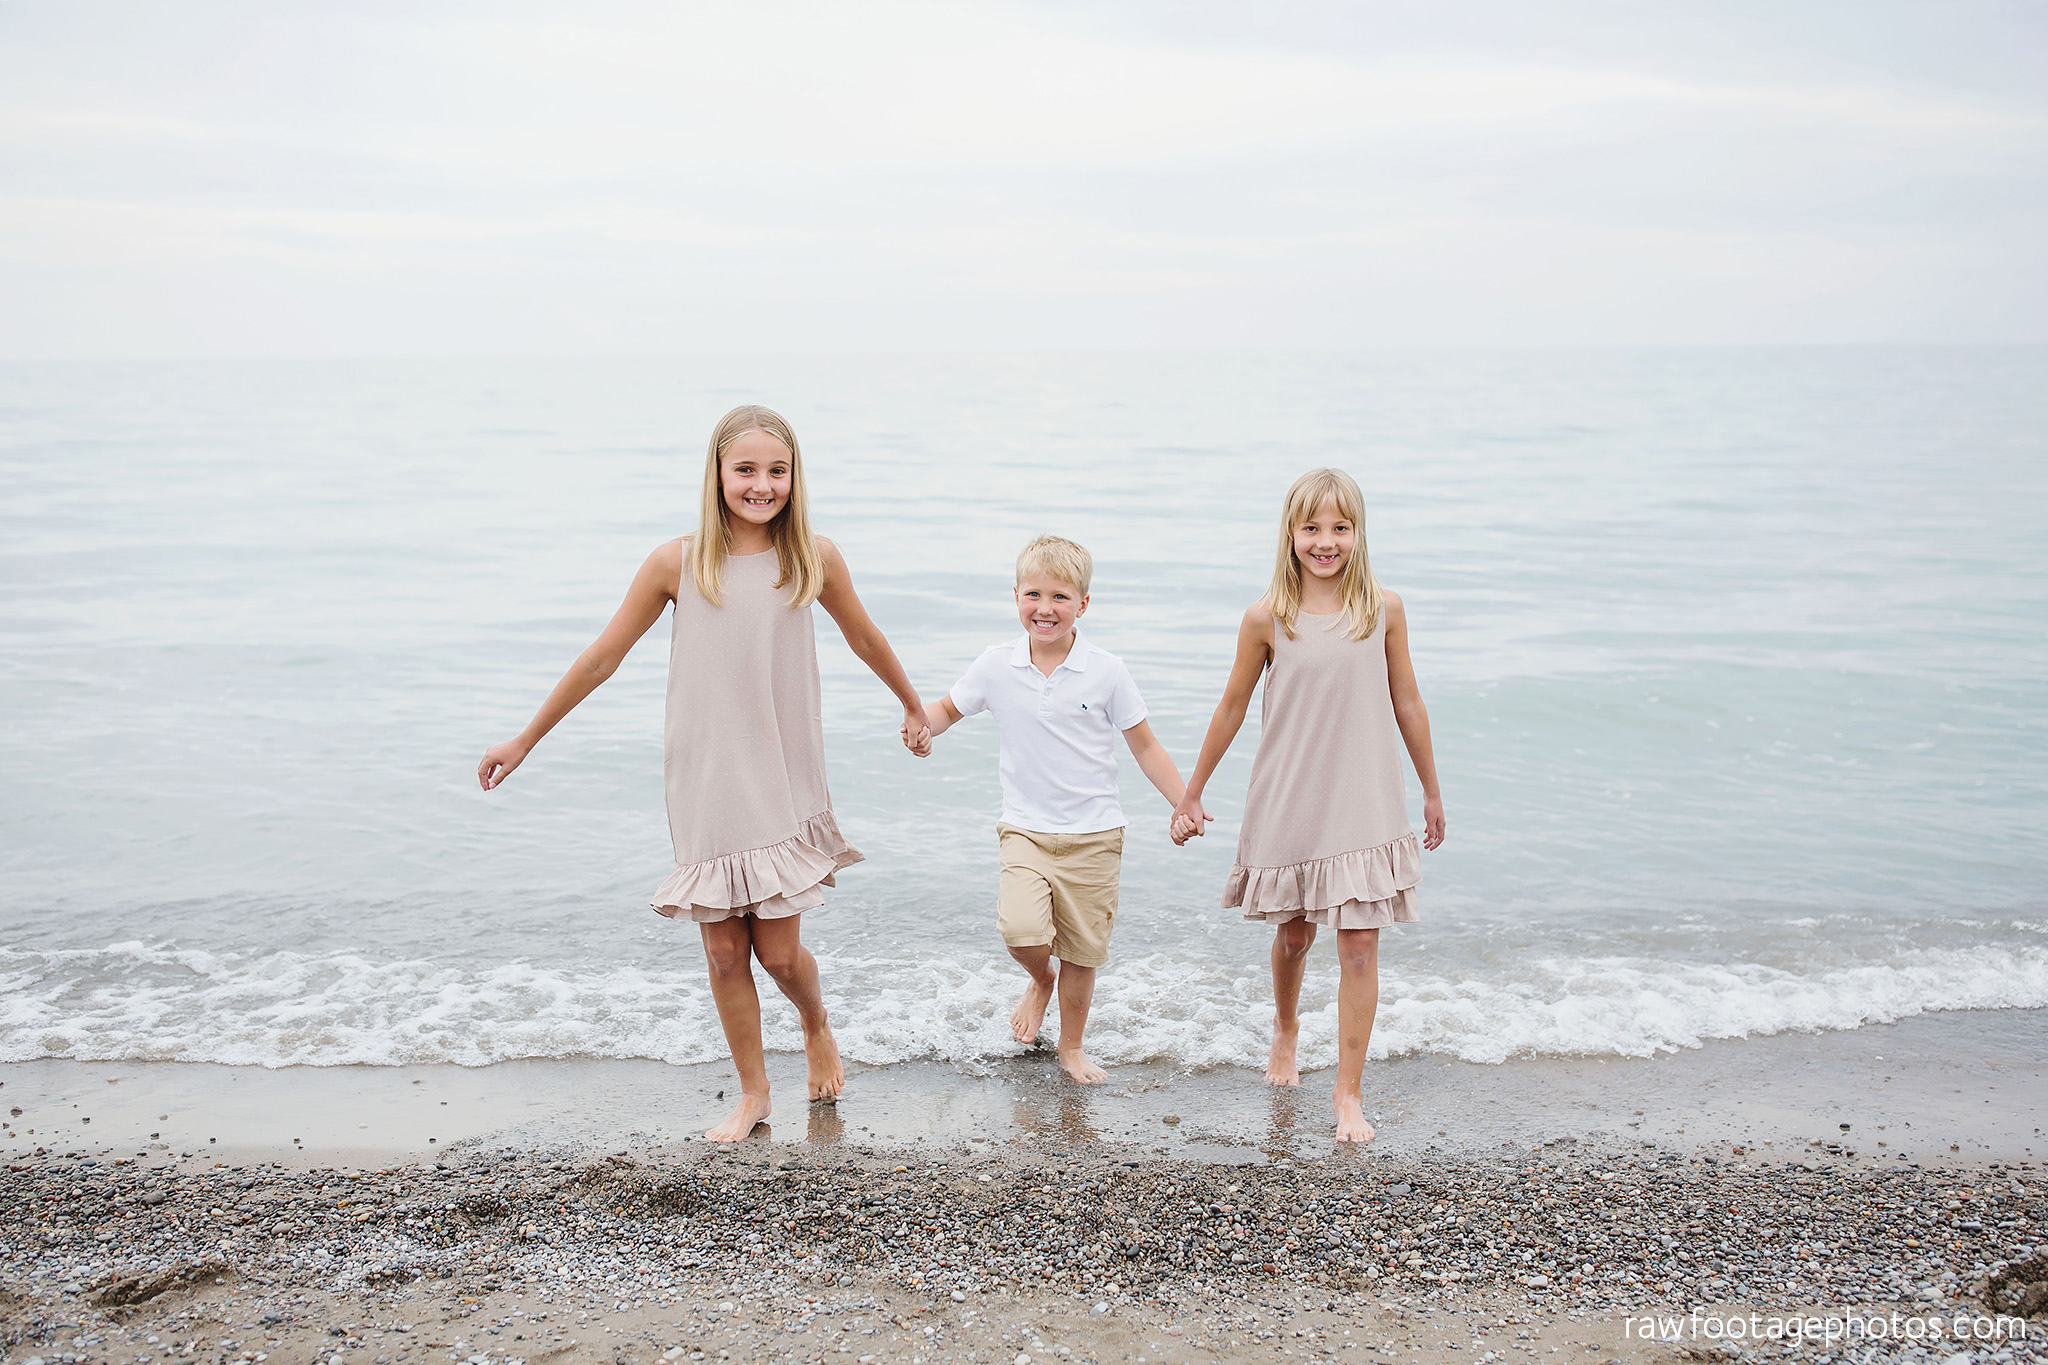 london_ontario_family_photographer-beach_minis-port_stanley_beach-raw_footage_photography029.jpg